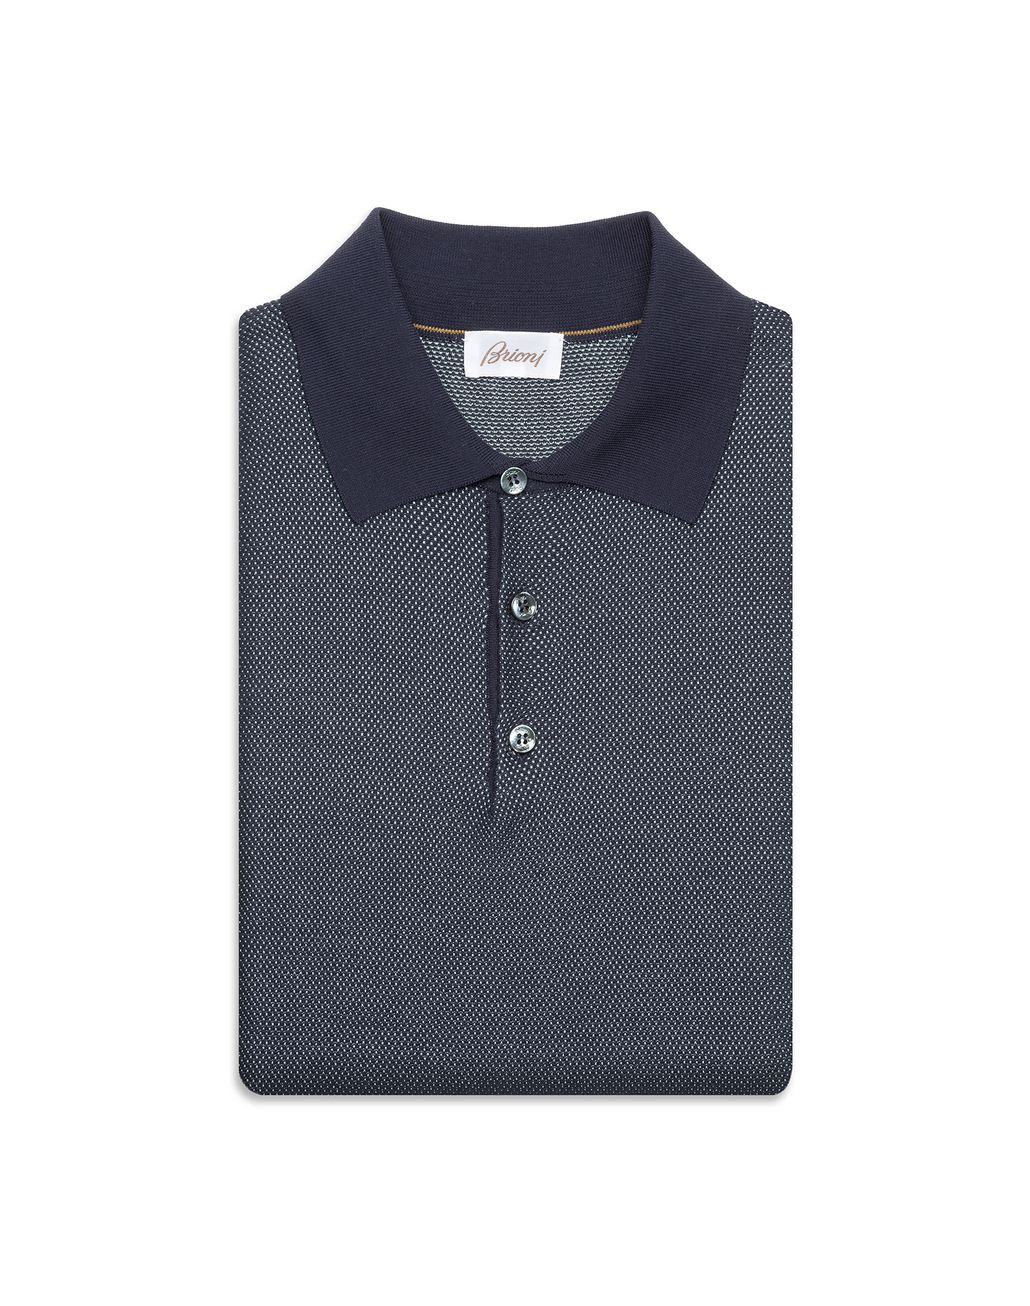 BRIONI Navy Blue Cotton and Silk Piquet Polo Shirt T-Shirts & Polos Man e